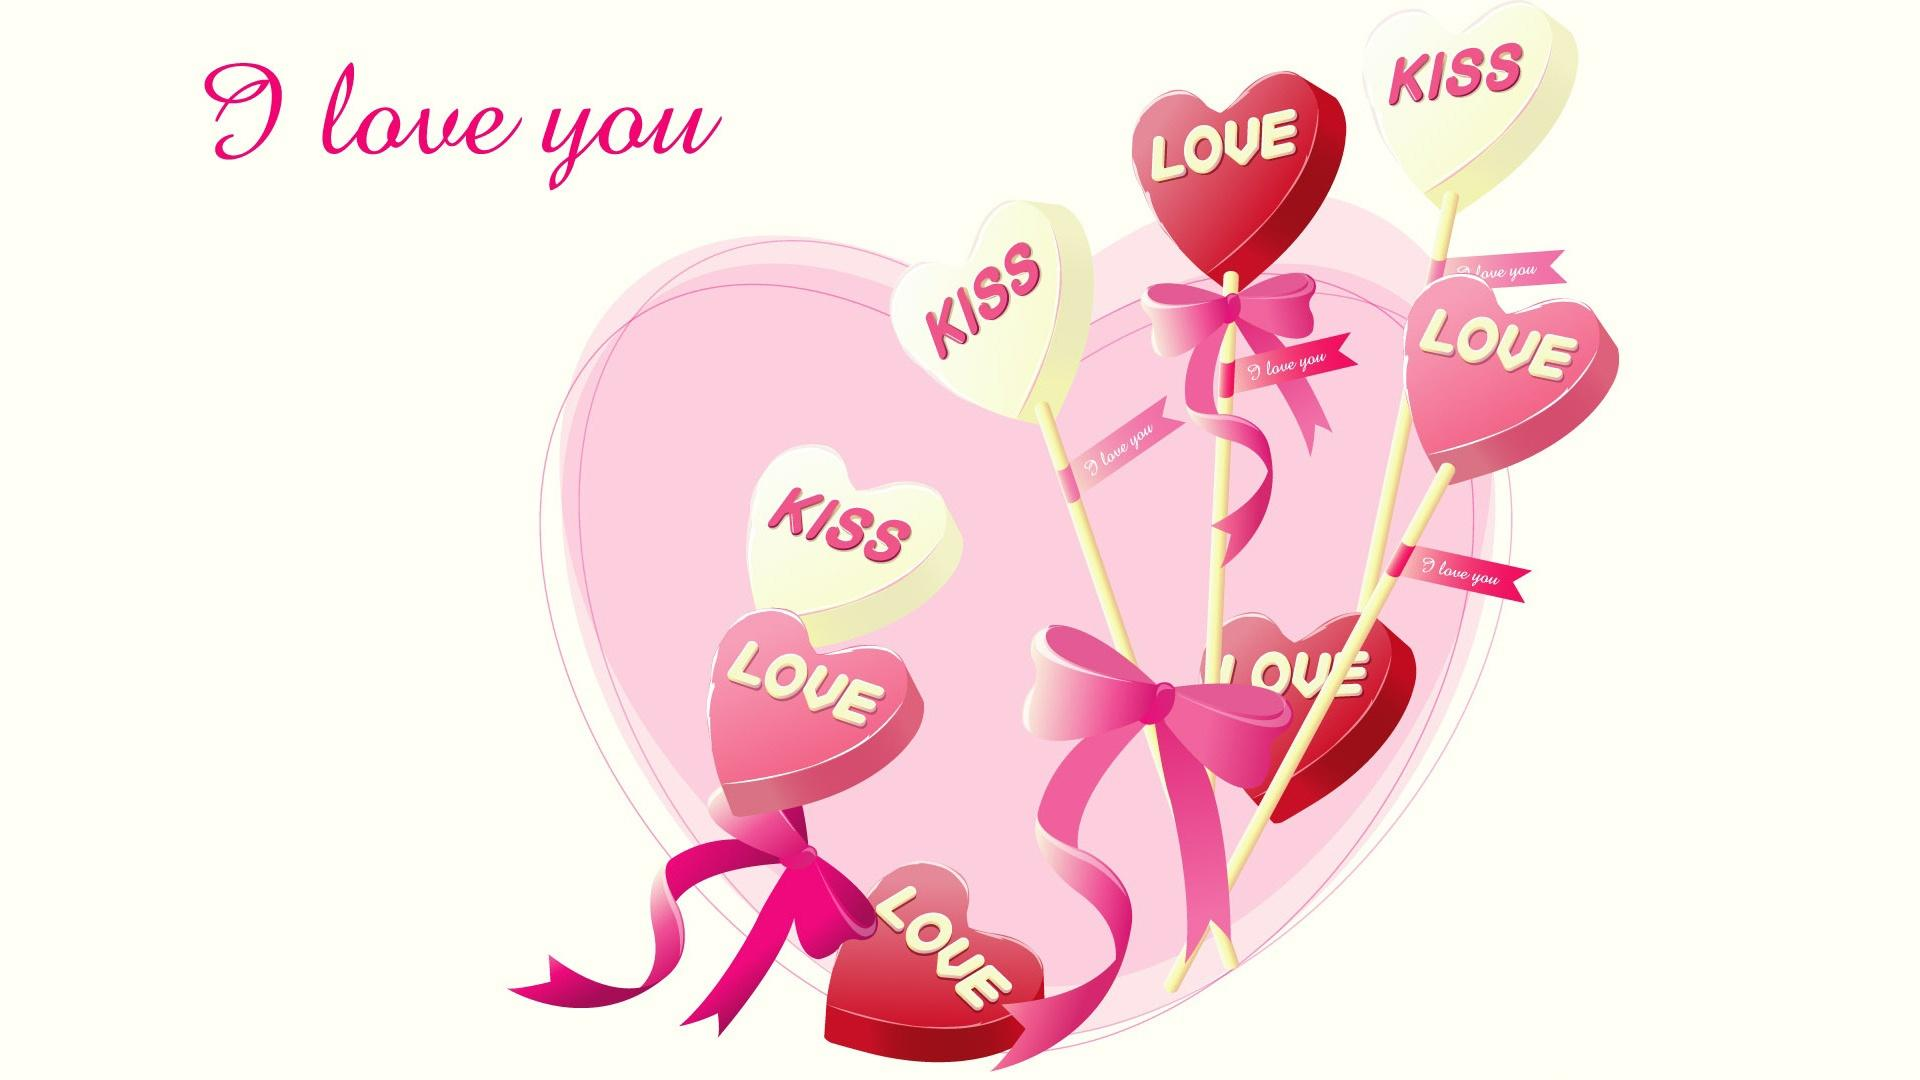 i love you heart hd wallpaper FREE 4U WALLPAPERS 1920x1080